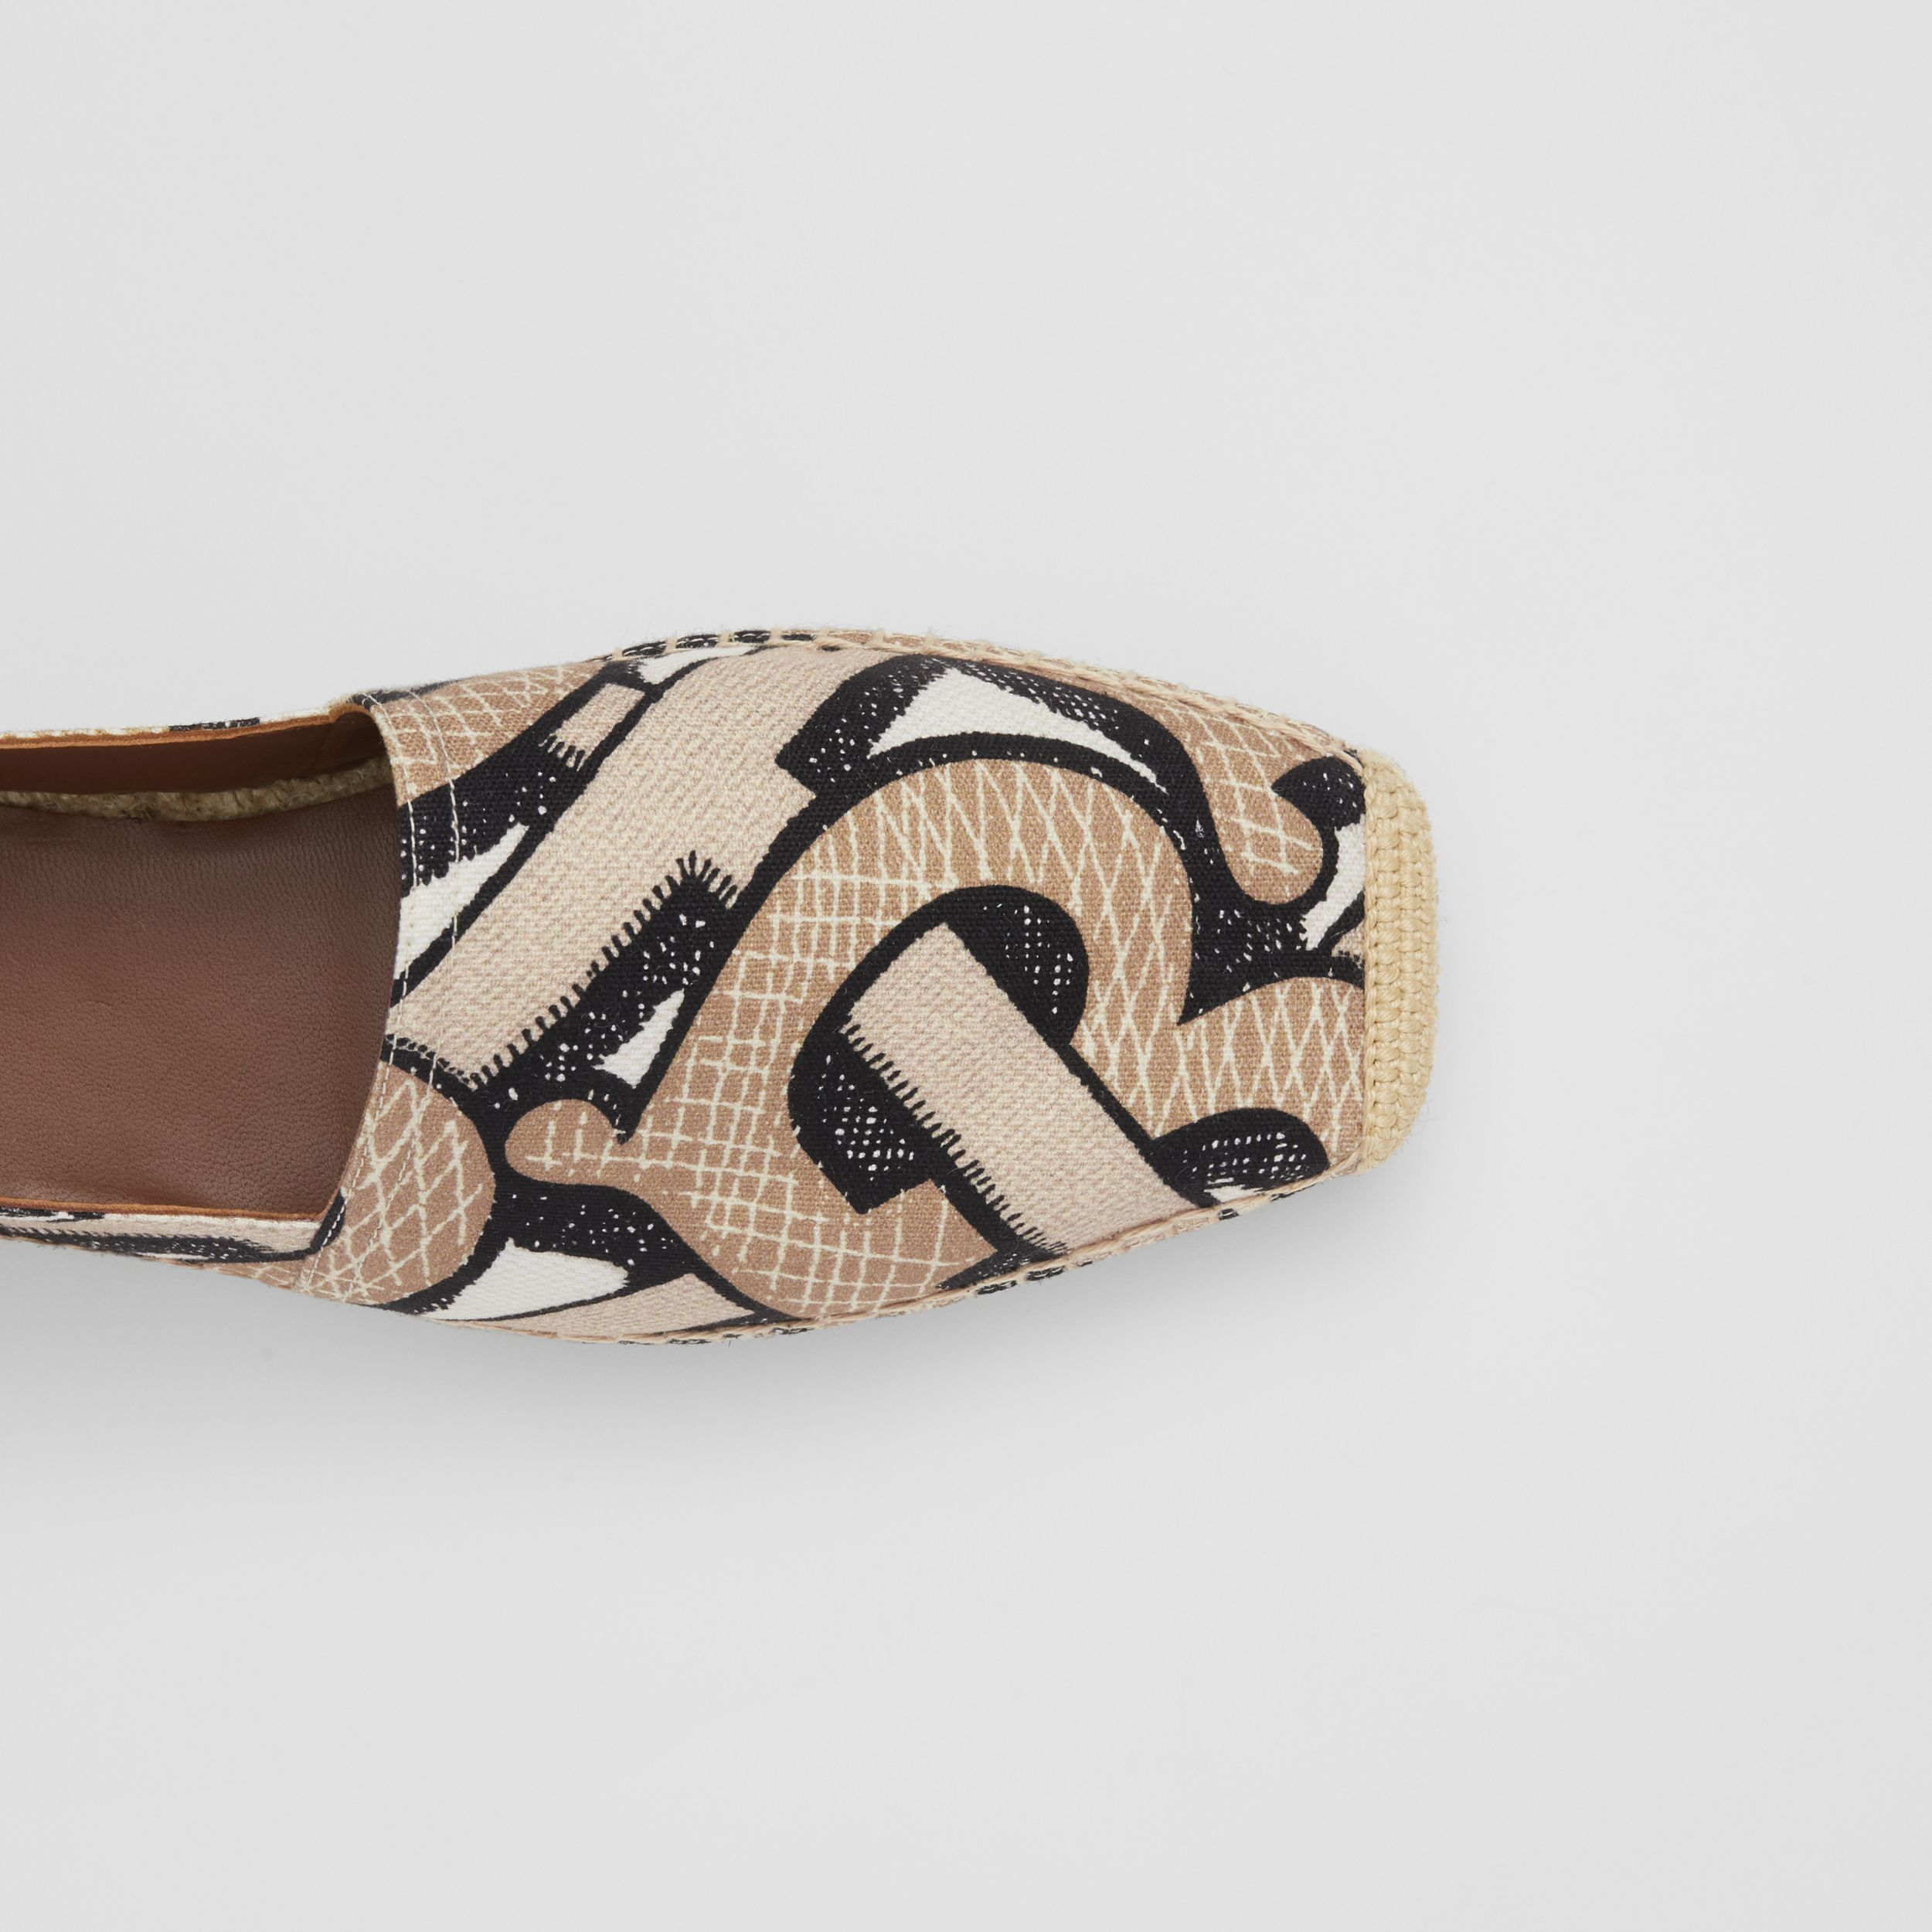 Monogram Print Cotton Canvas Espadrilles in Dark Beige - Women | Burberry Canada - 2